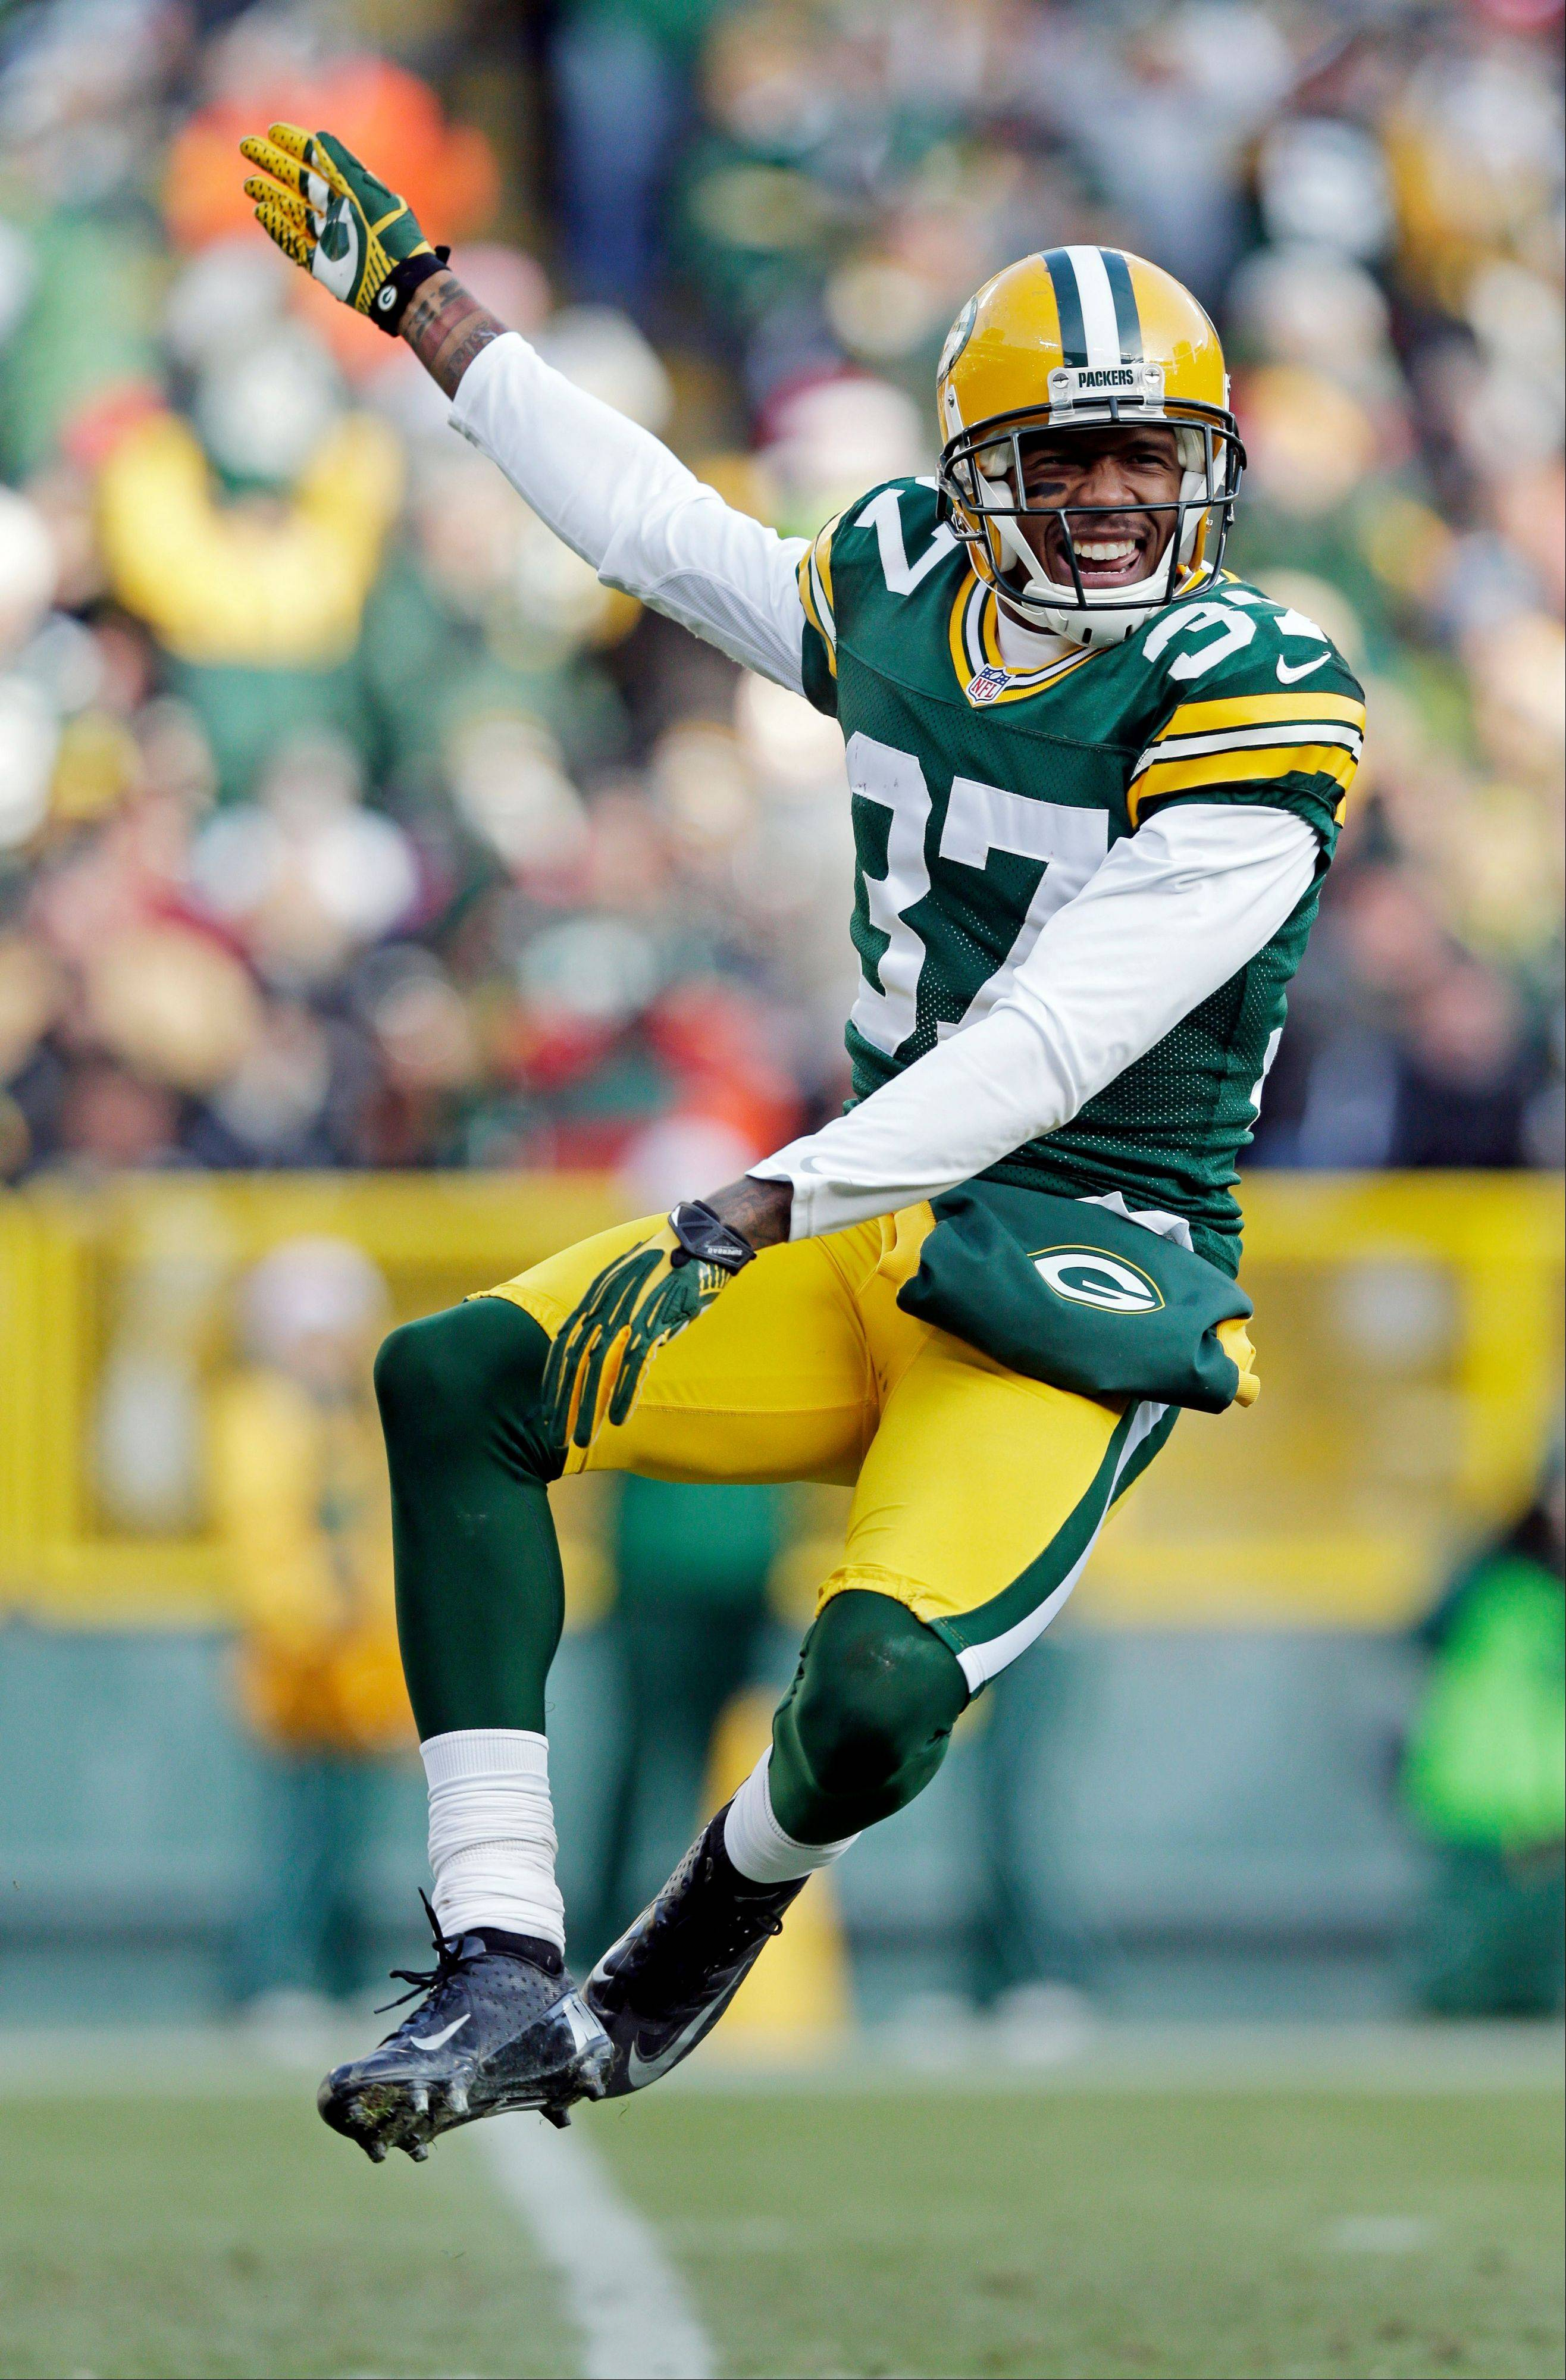 Green Bay Packers� Sam Shields reacts after sacking Tennessee Titans quarterback Jake Locker during the second half of an NFL football game Sunday, Dec. 23, 2012, in Green Bay, Wis.